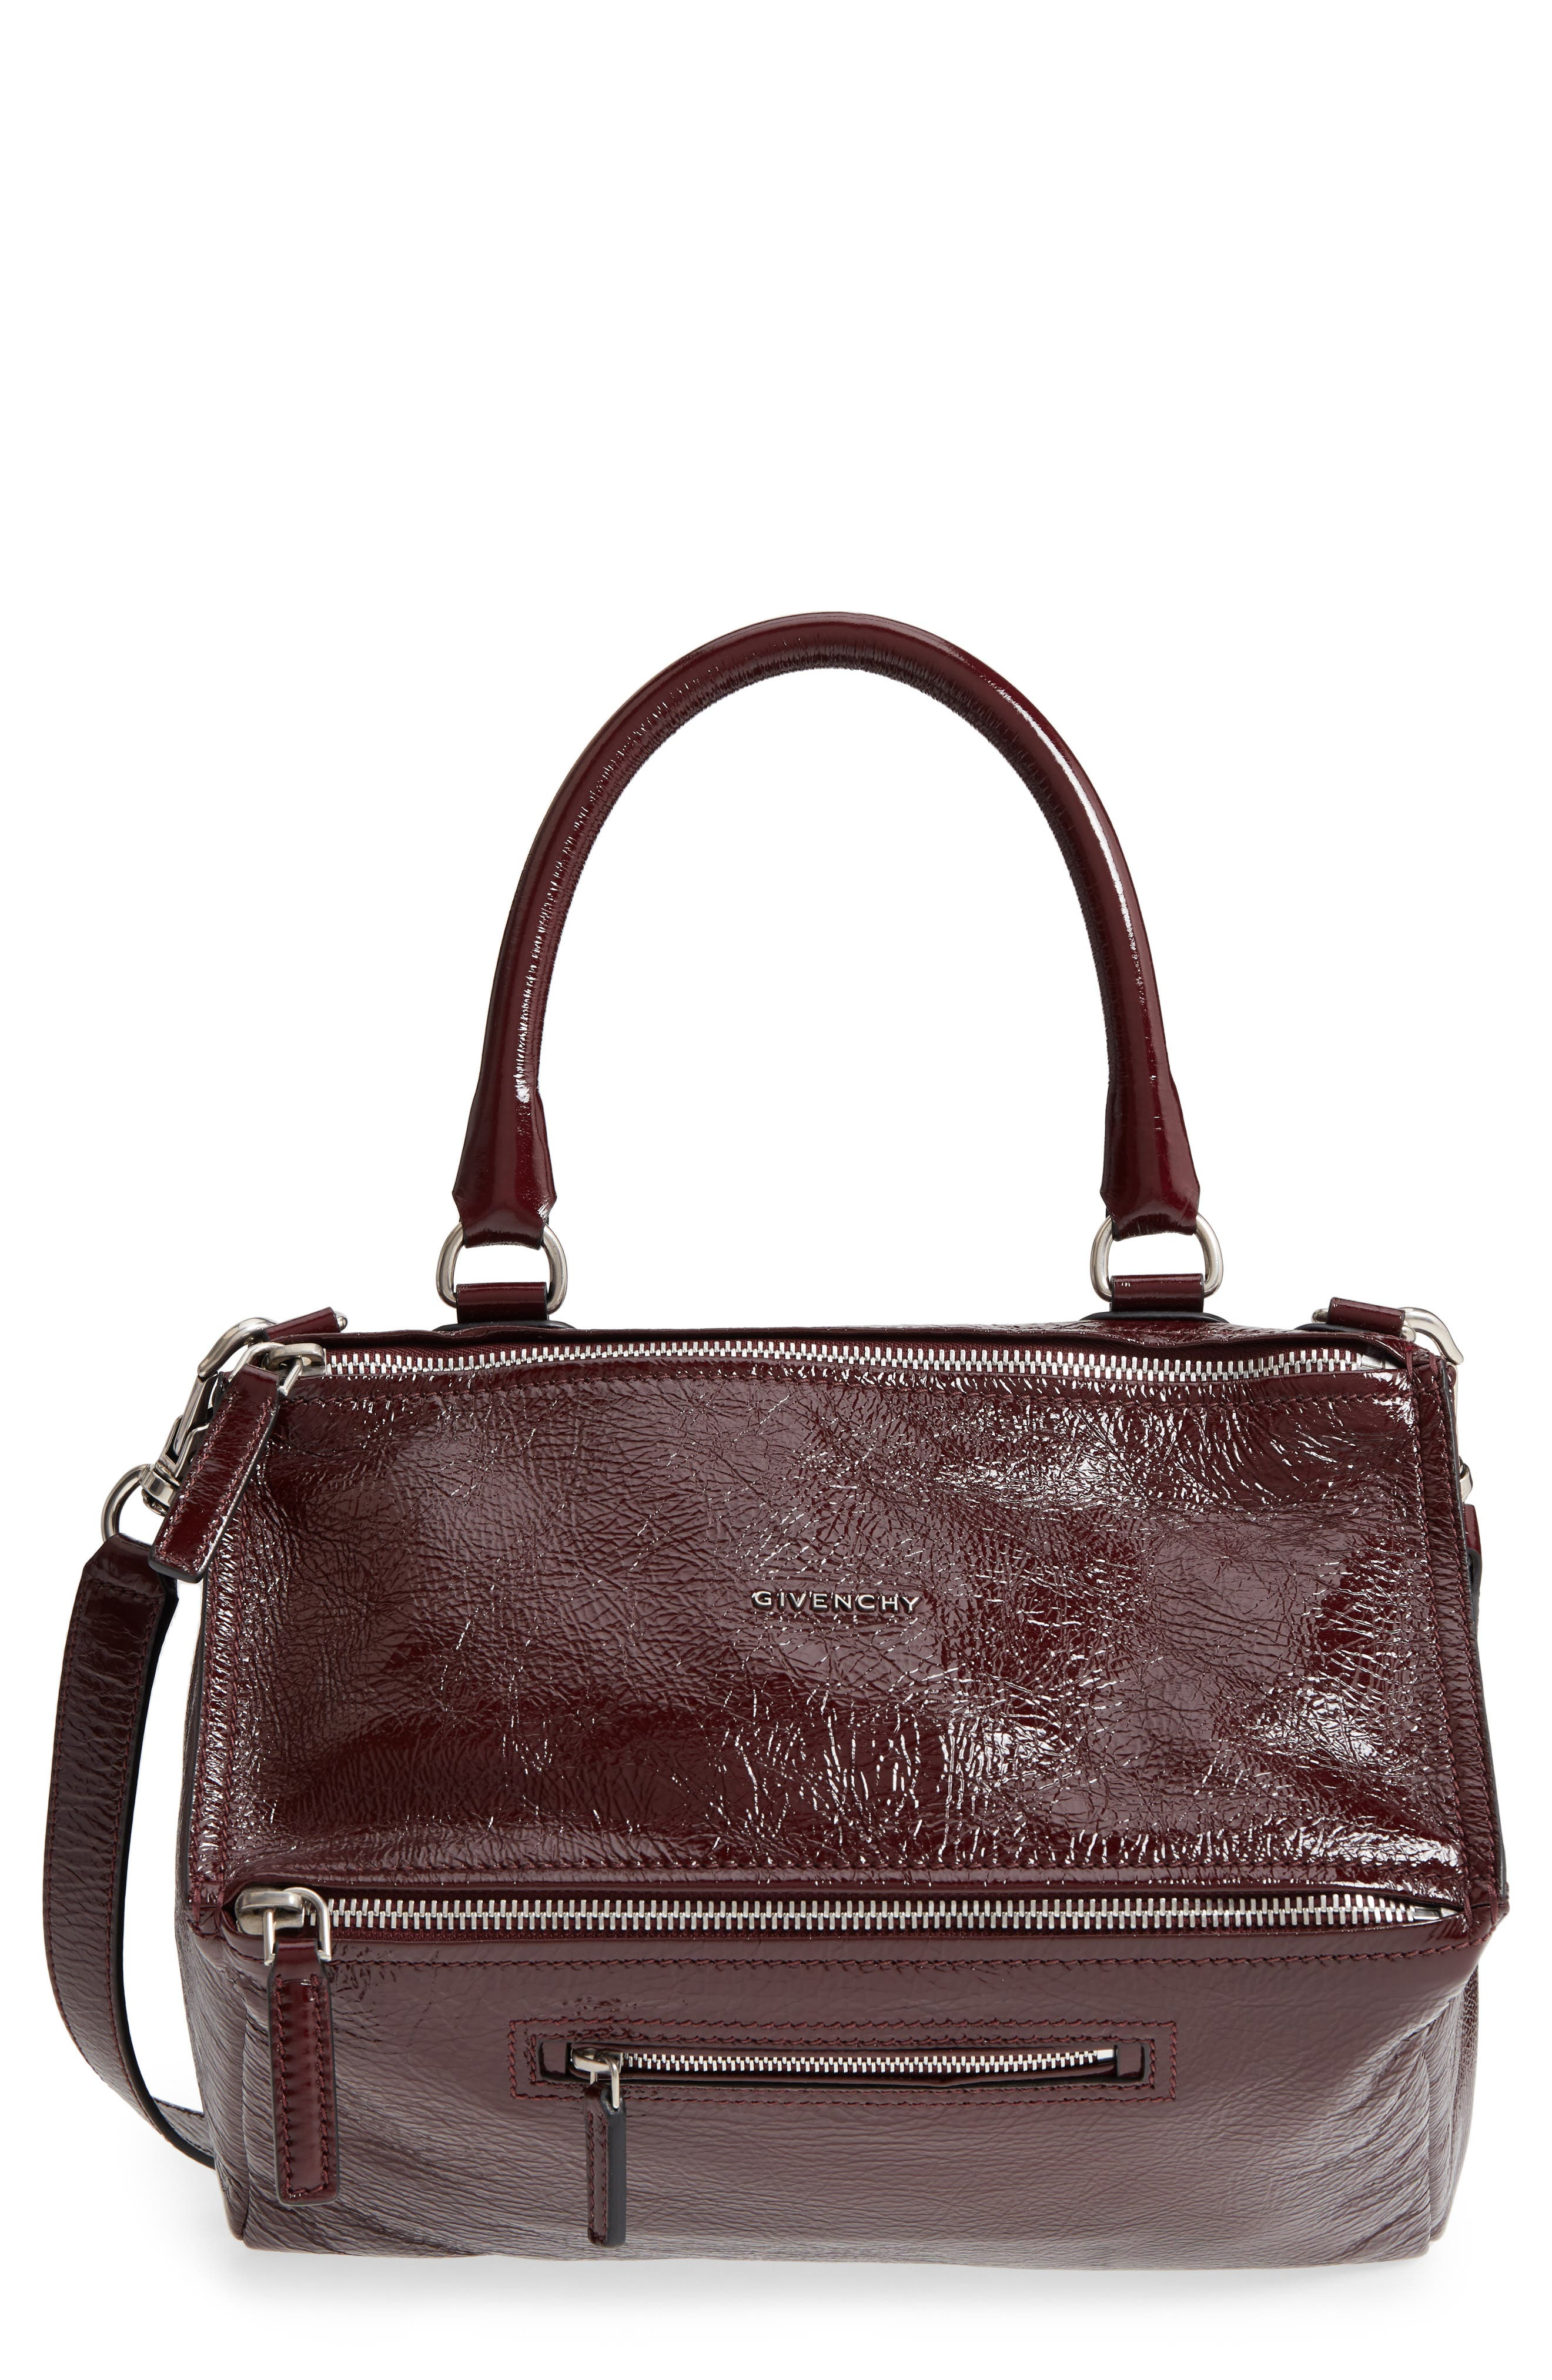 Givenchy Medium Pandora Creased Patent Leather Shoulder Bag